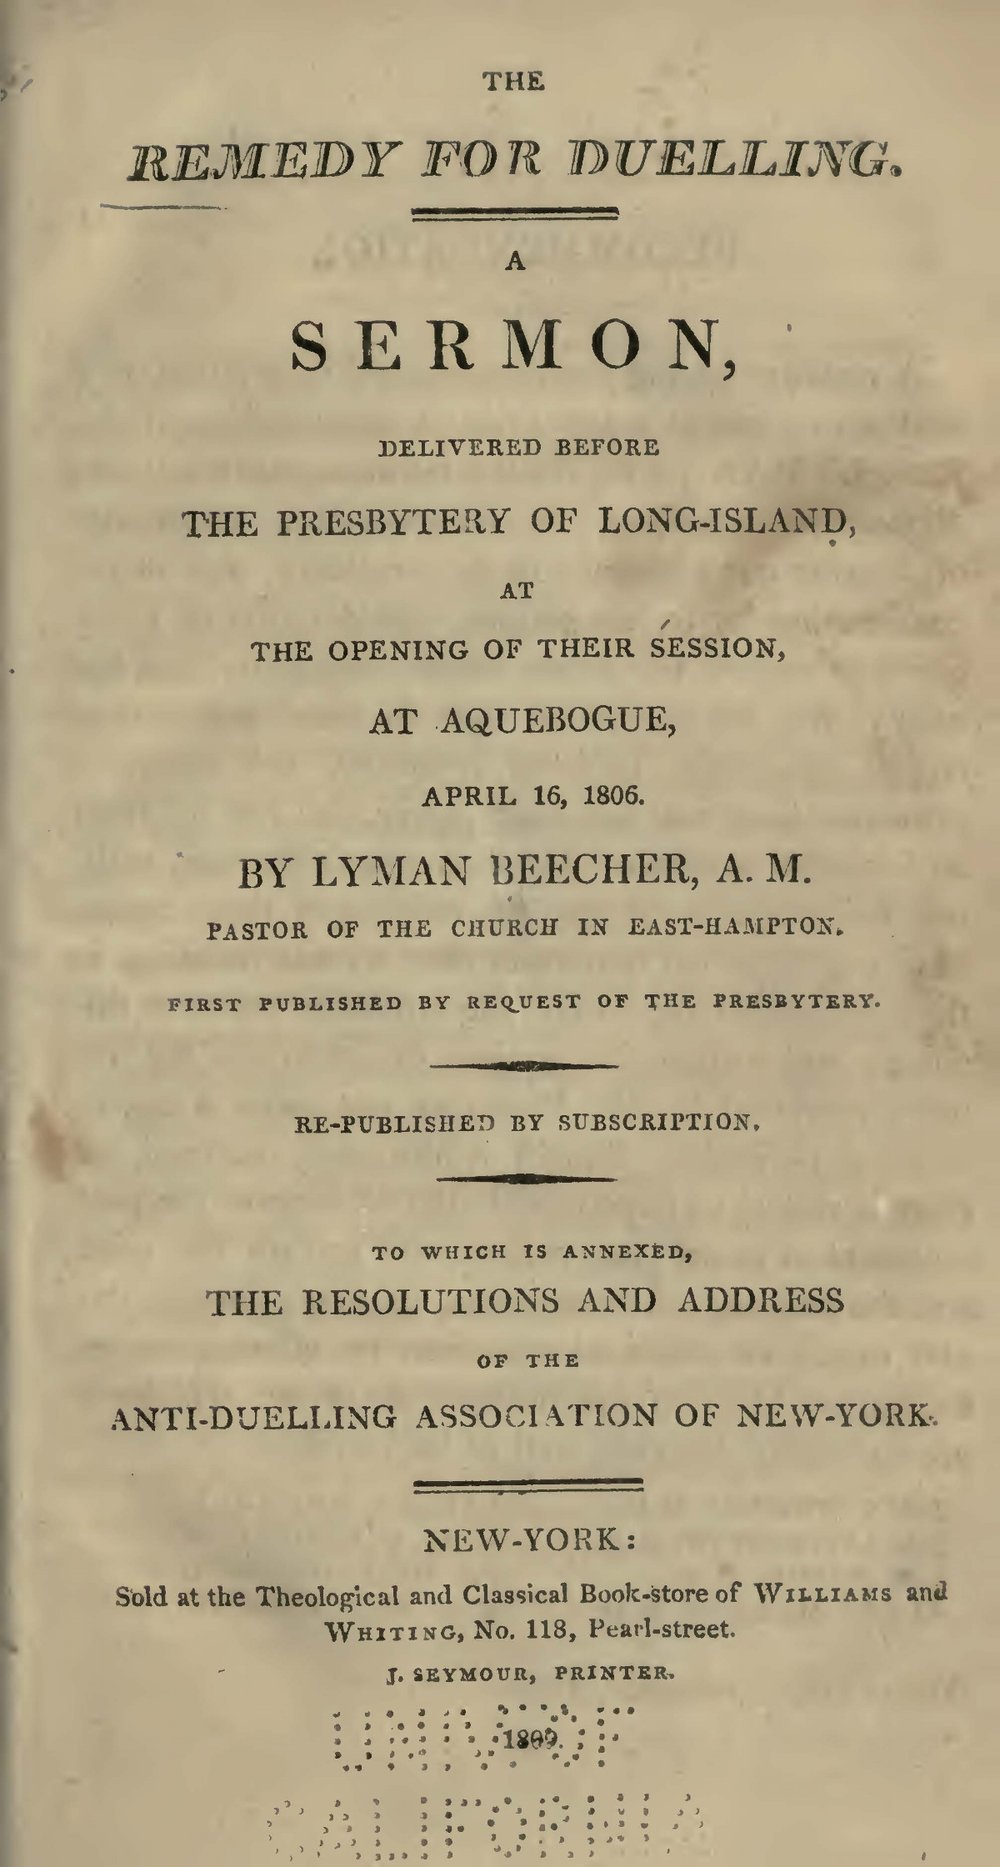 Beecher, Lyman, The Remedy for Duelling Title Page.jpg